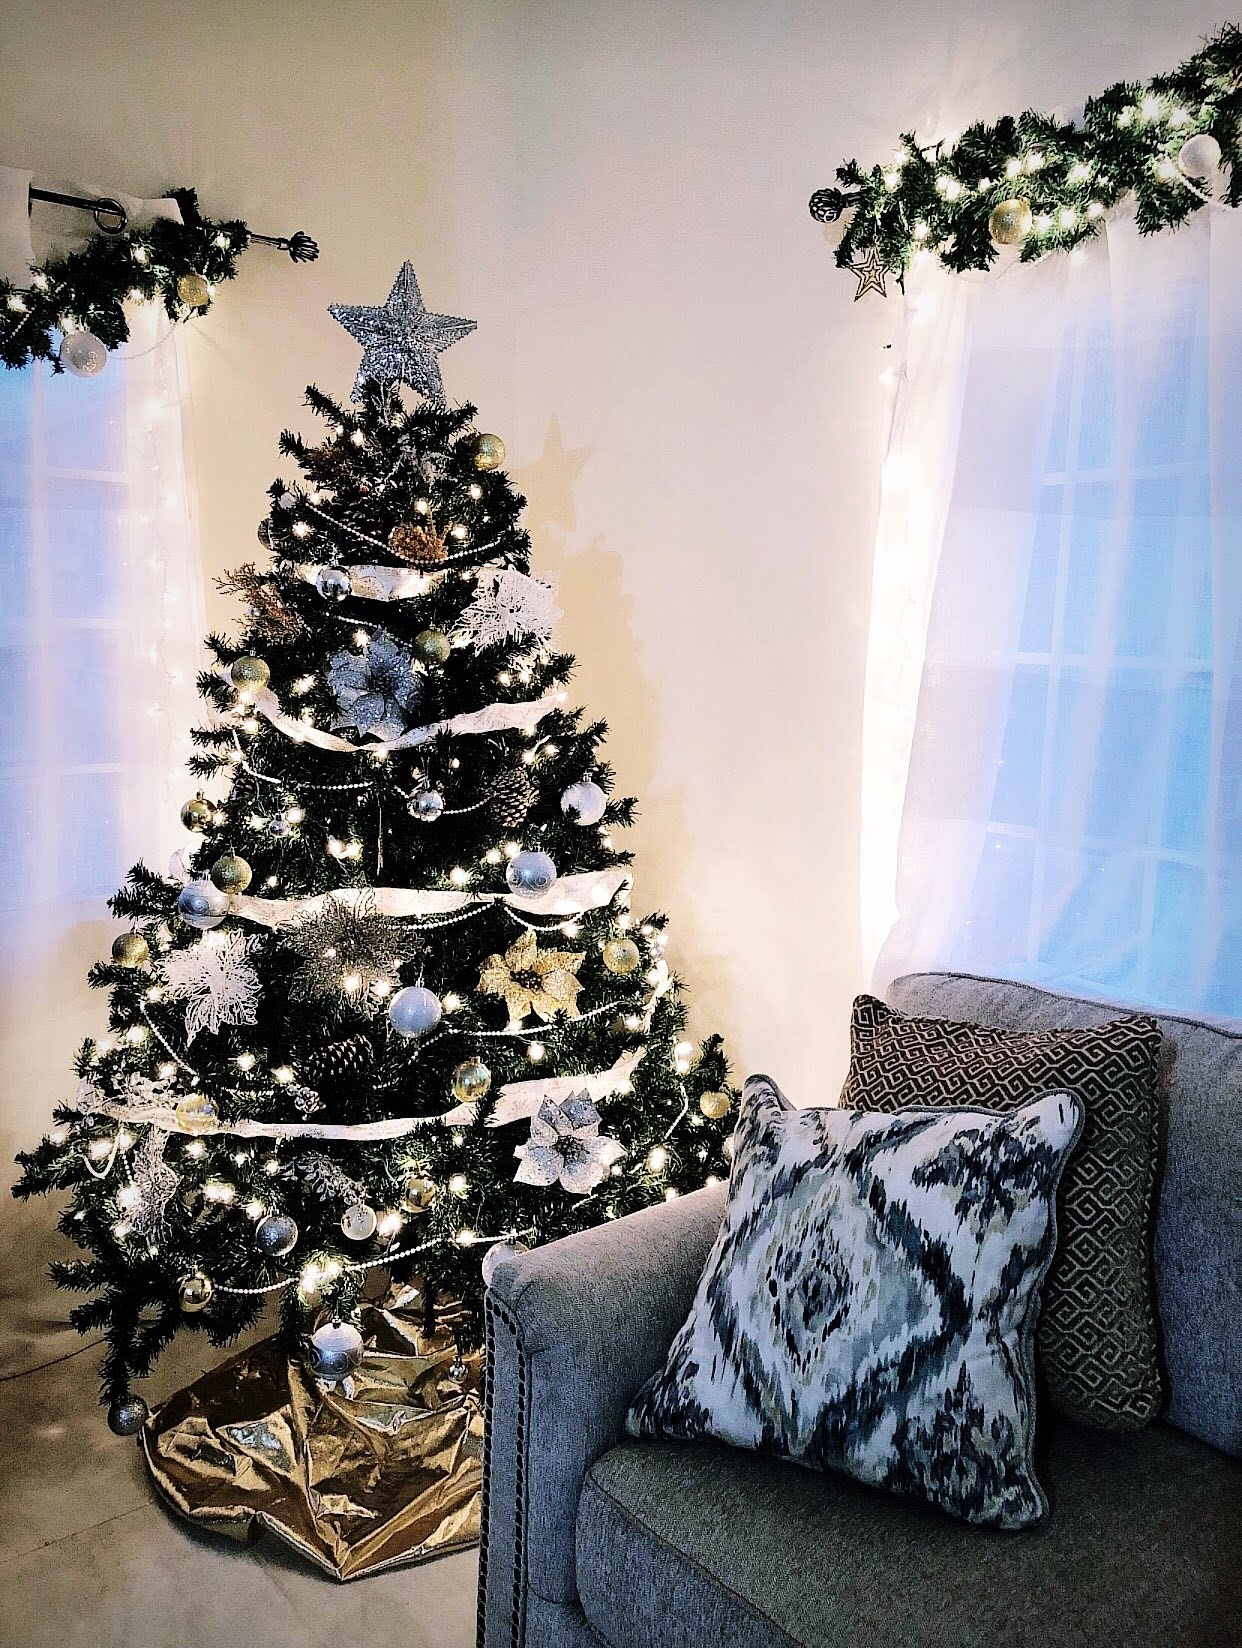 How to Decorate a Christmas Tree in 10 Quick Steps